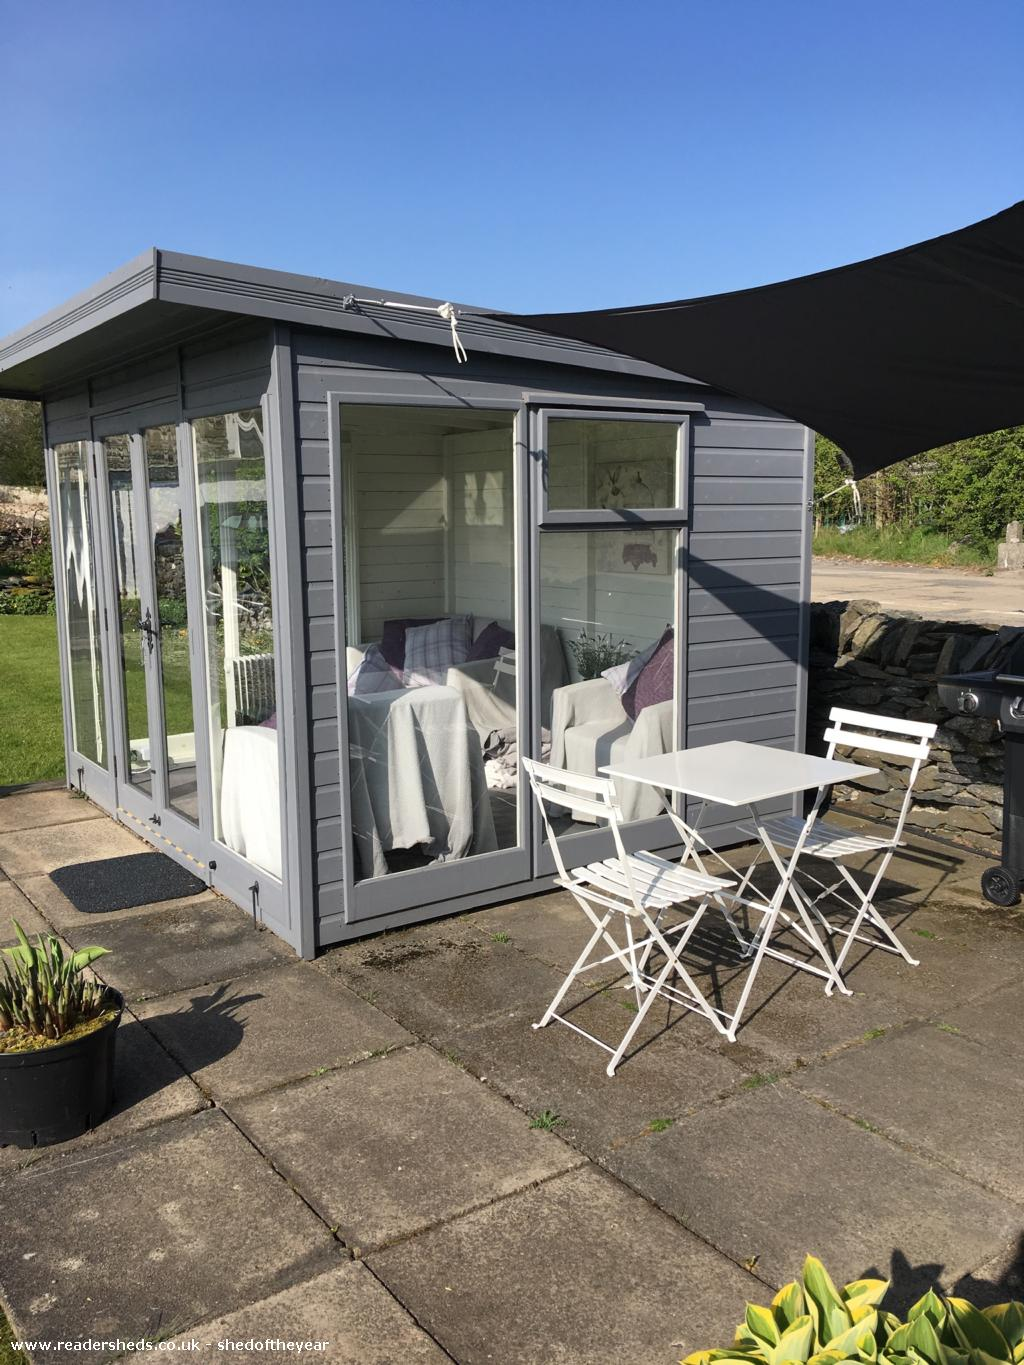 Photo of Pont Melin Shed, entry to Shed of the year-Patio area